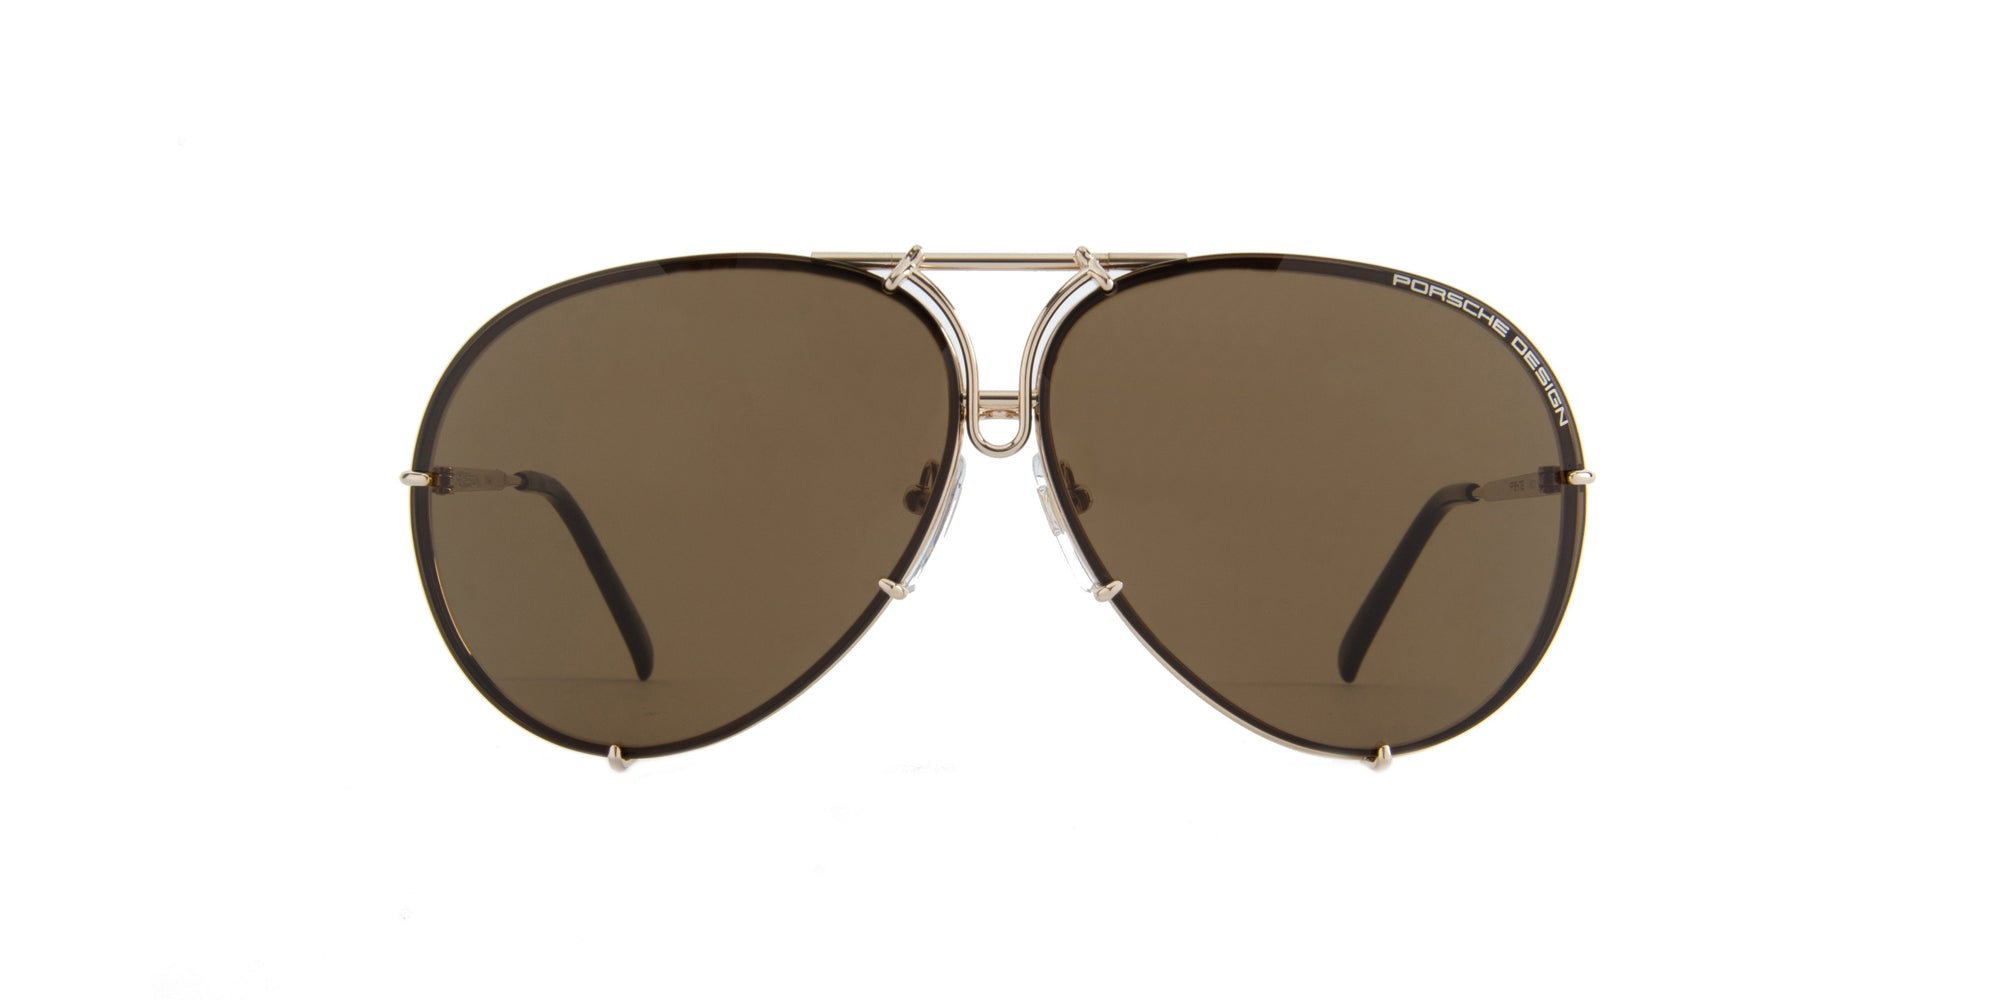 Porsche Design - P8478 Gold Aviator Men Sunglasses - 135mm-Sunglasses-Designer Eyes